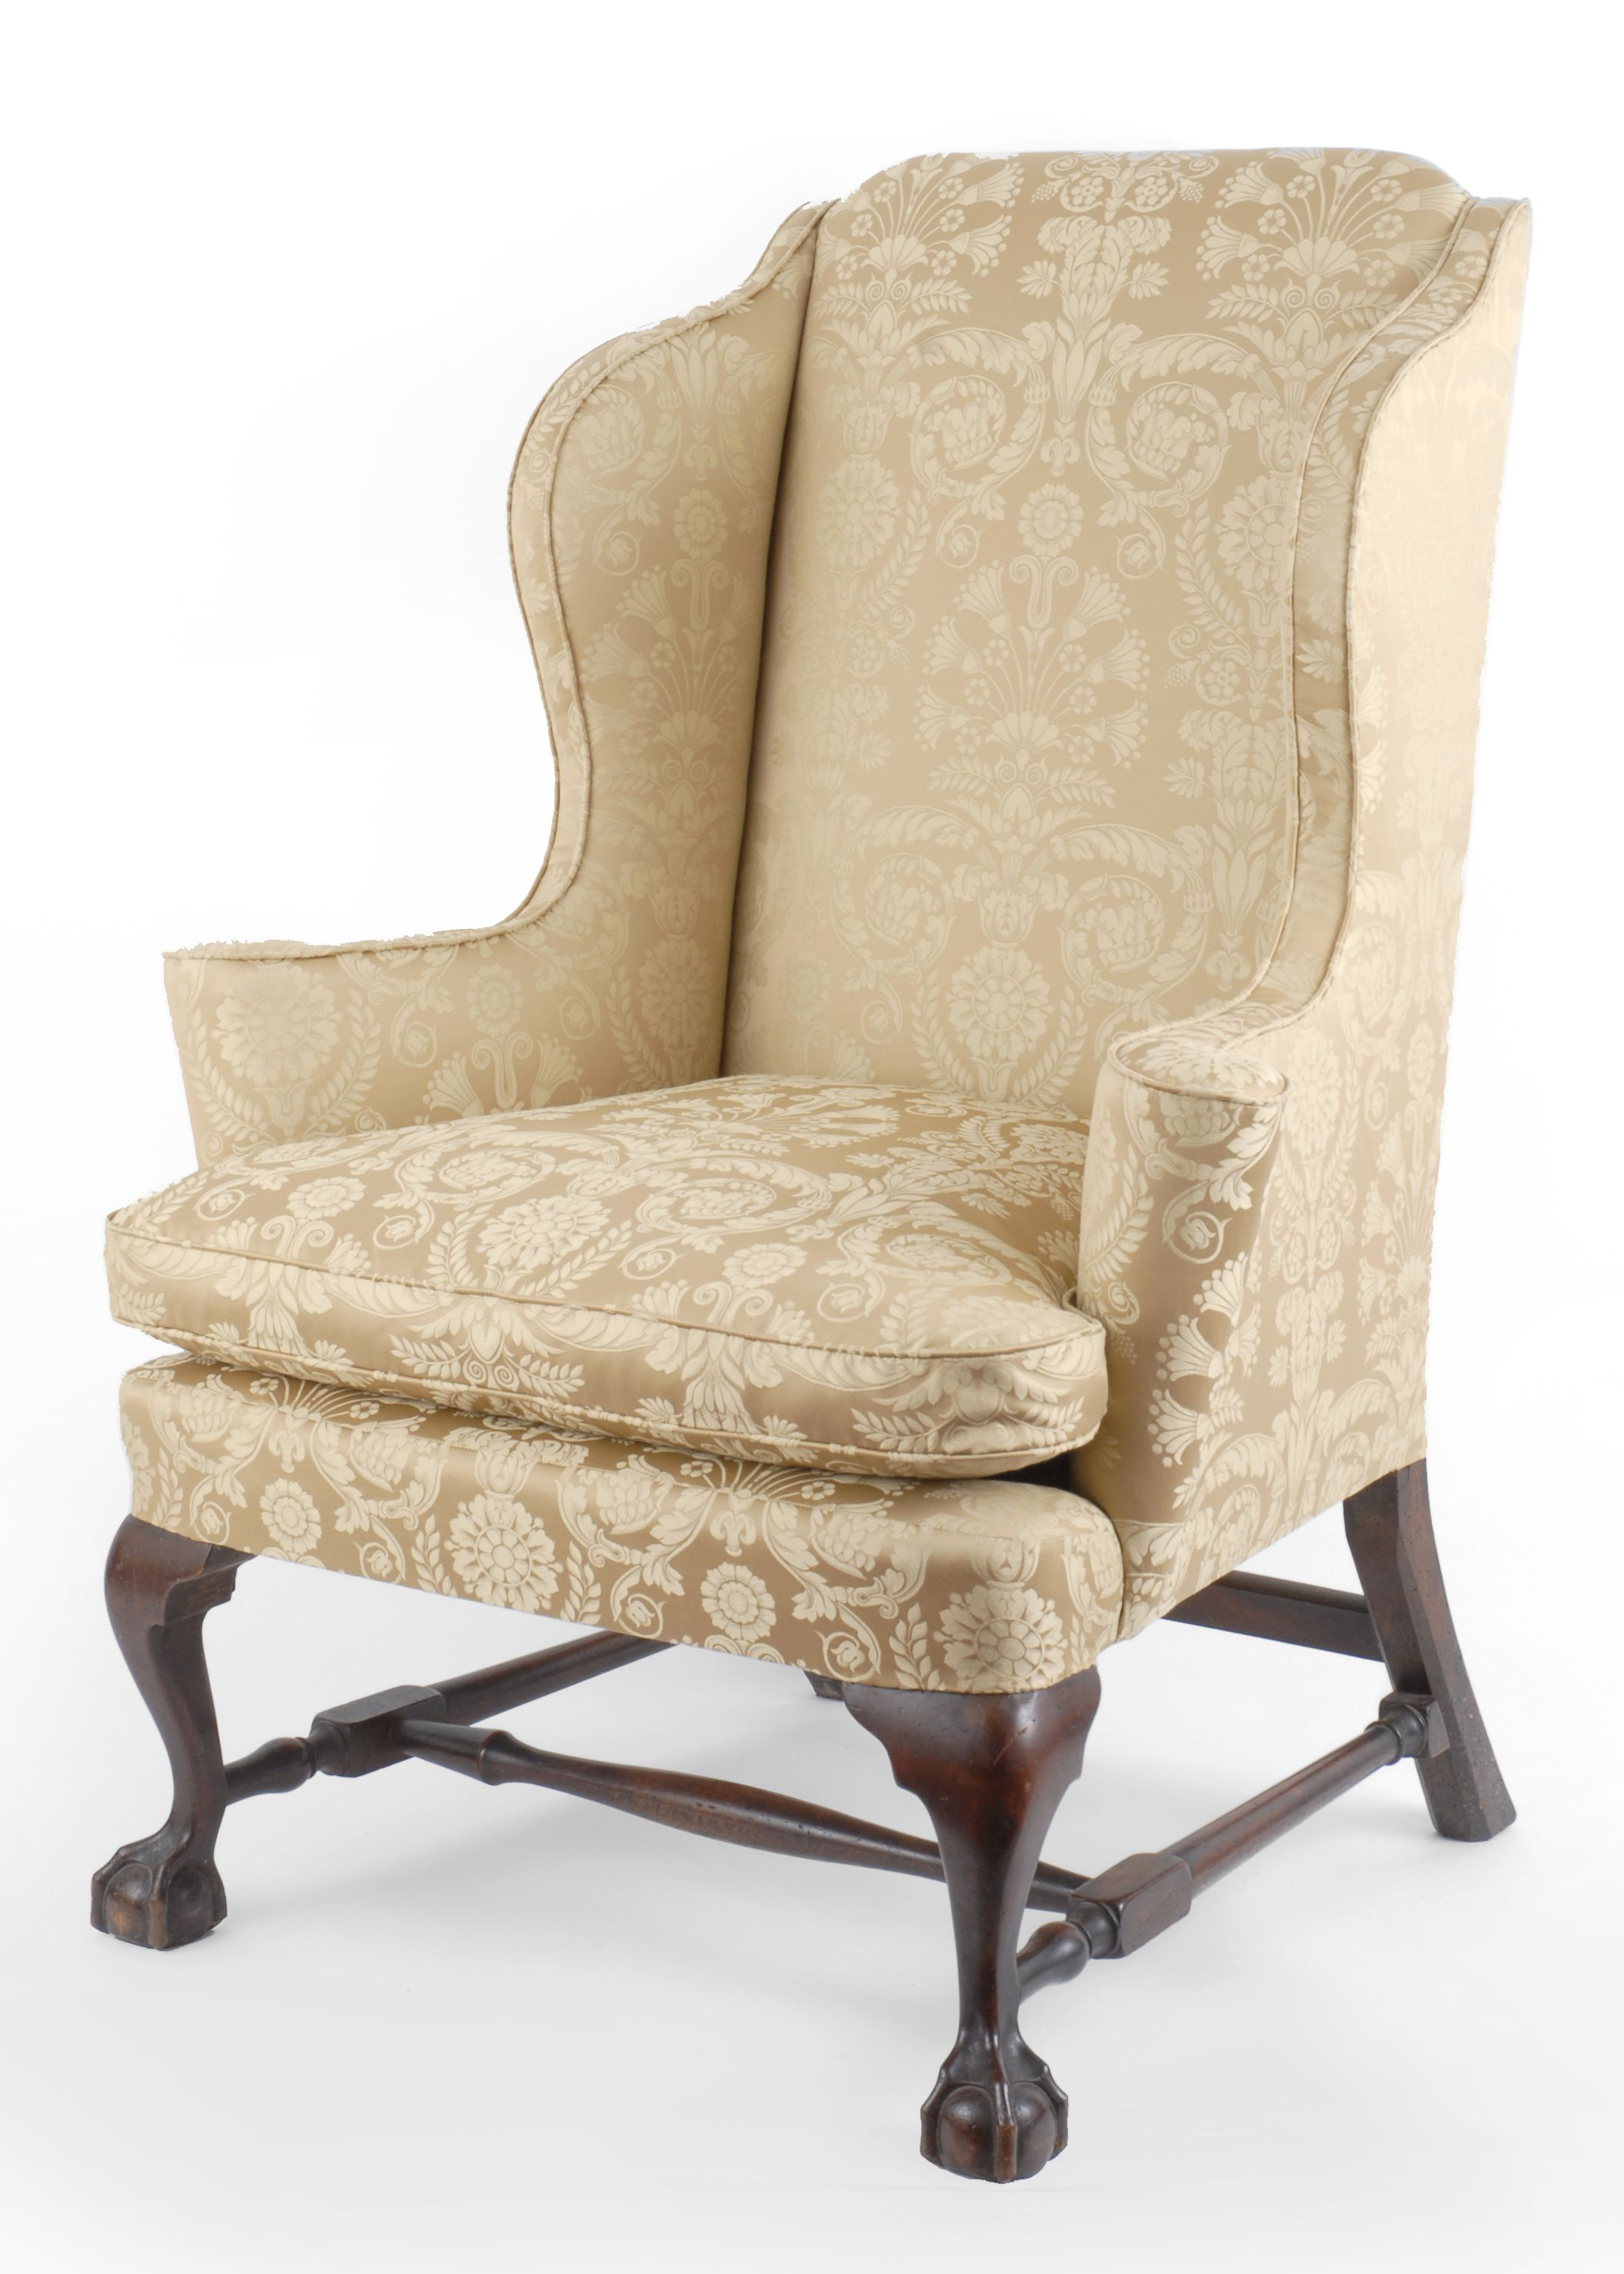 Antique Wingback Chair Google Search Wingback Chair Vintage Wingback Chair Chair